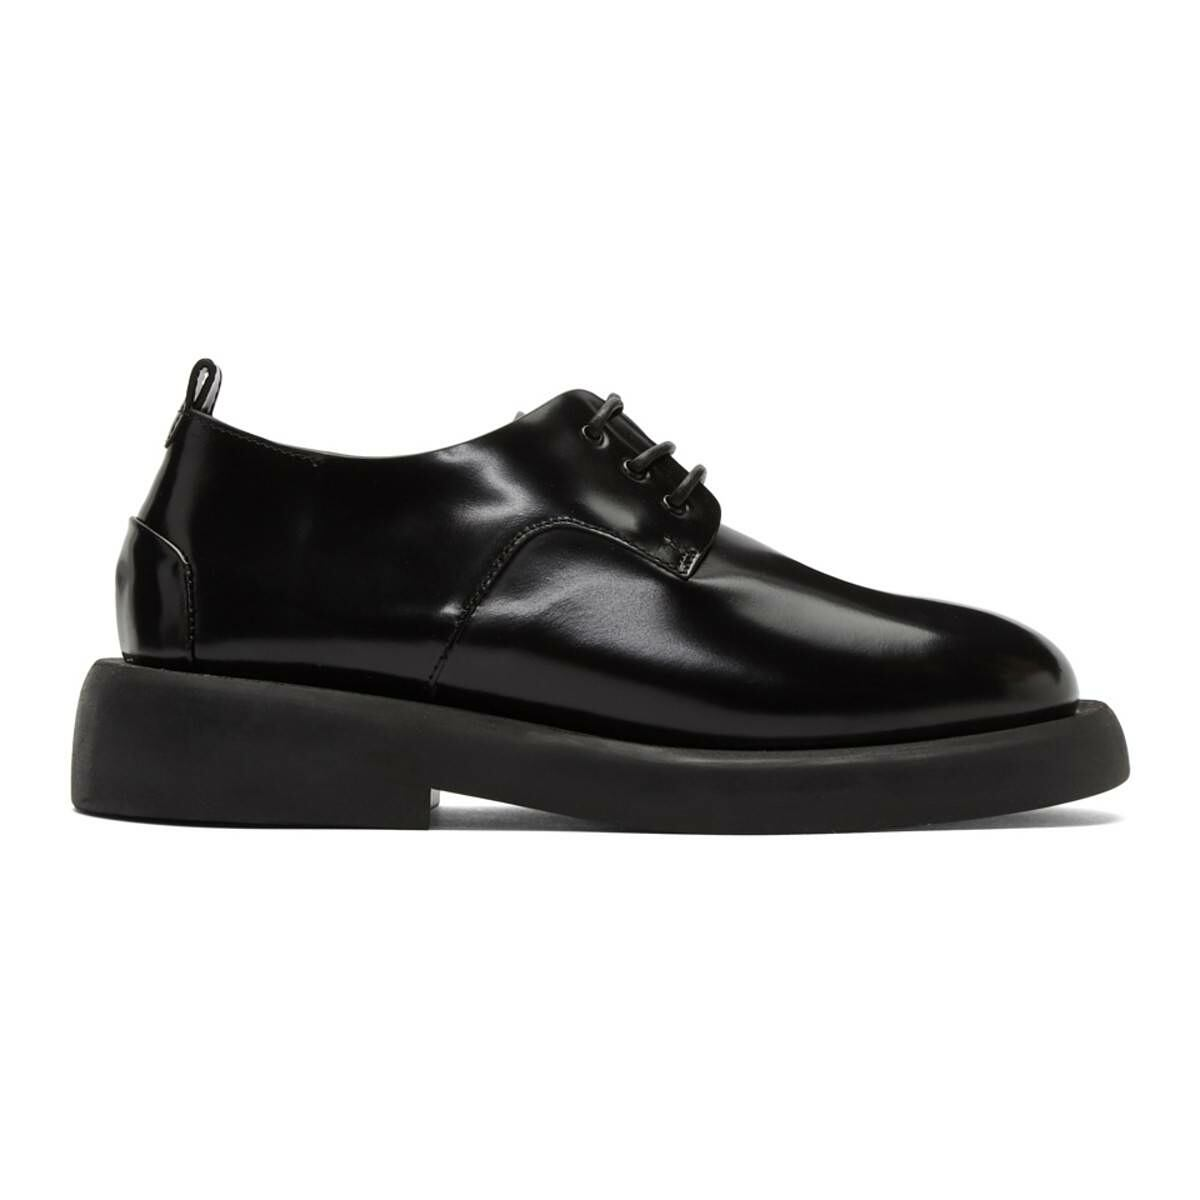 Marsell Black Gomme Gommello Derbys Ssense USA WOMEN Women SHOES Womens LEATHER SHOES